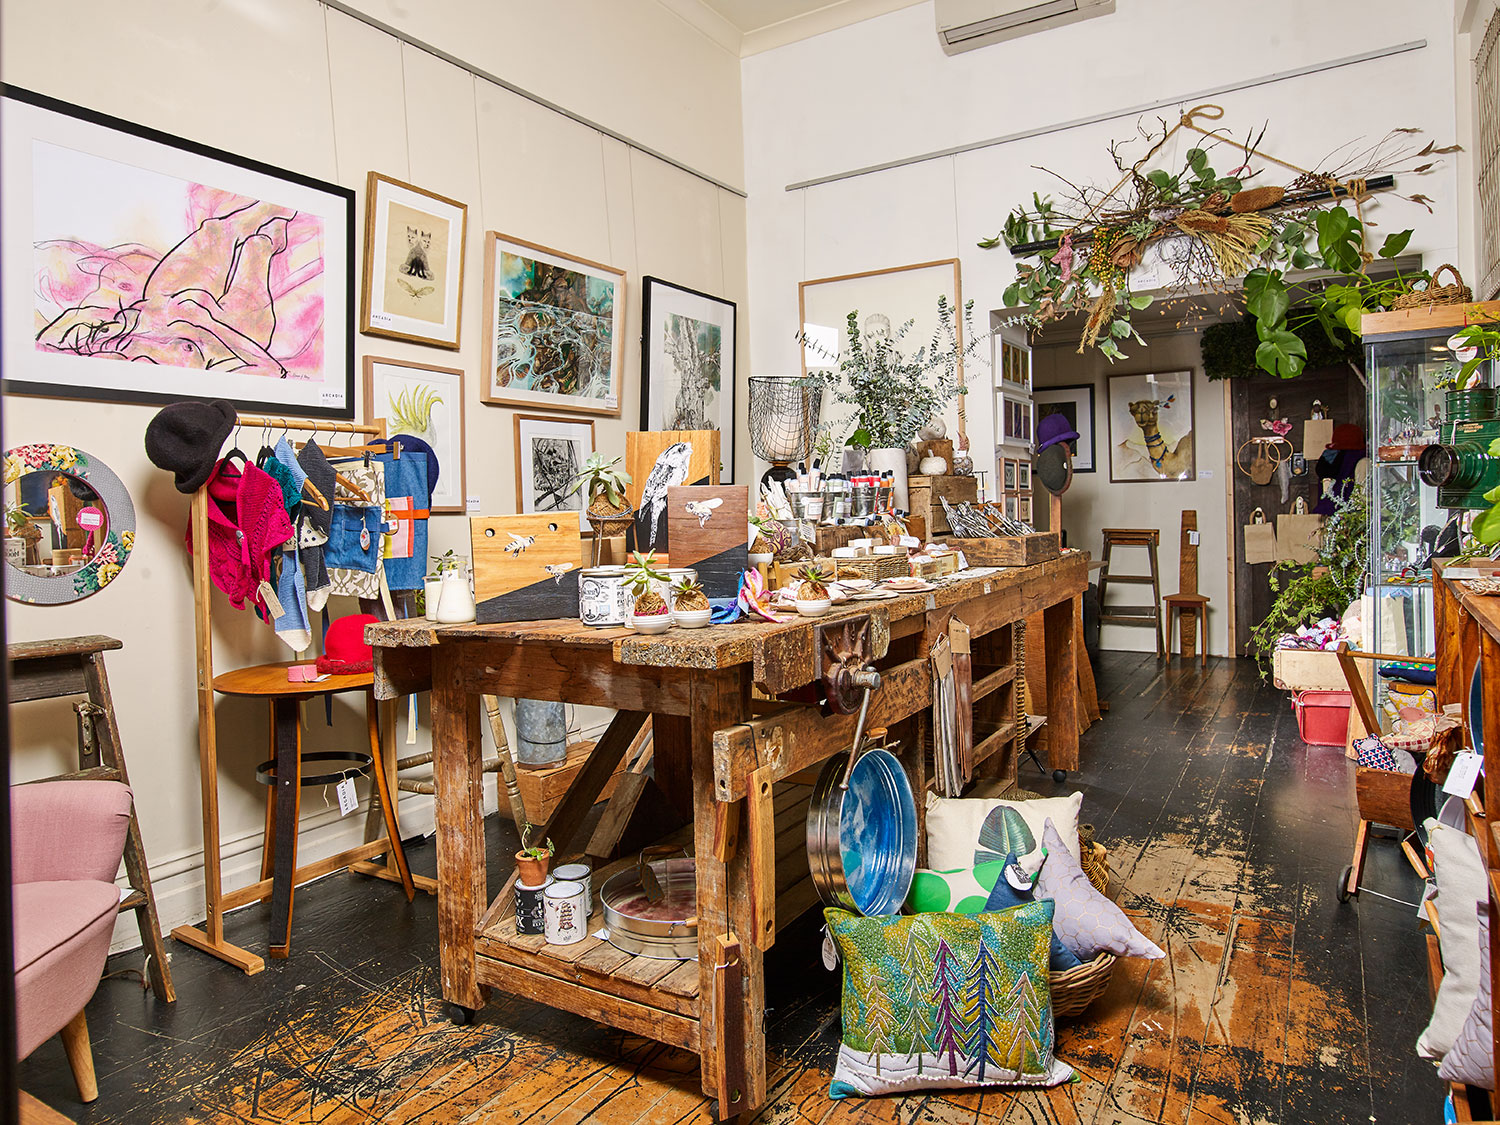 Explore the range of fine art and handmade craft products at Arcadia Gallery